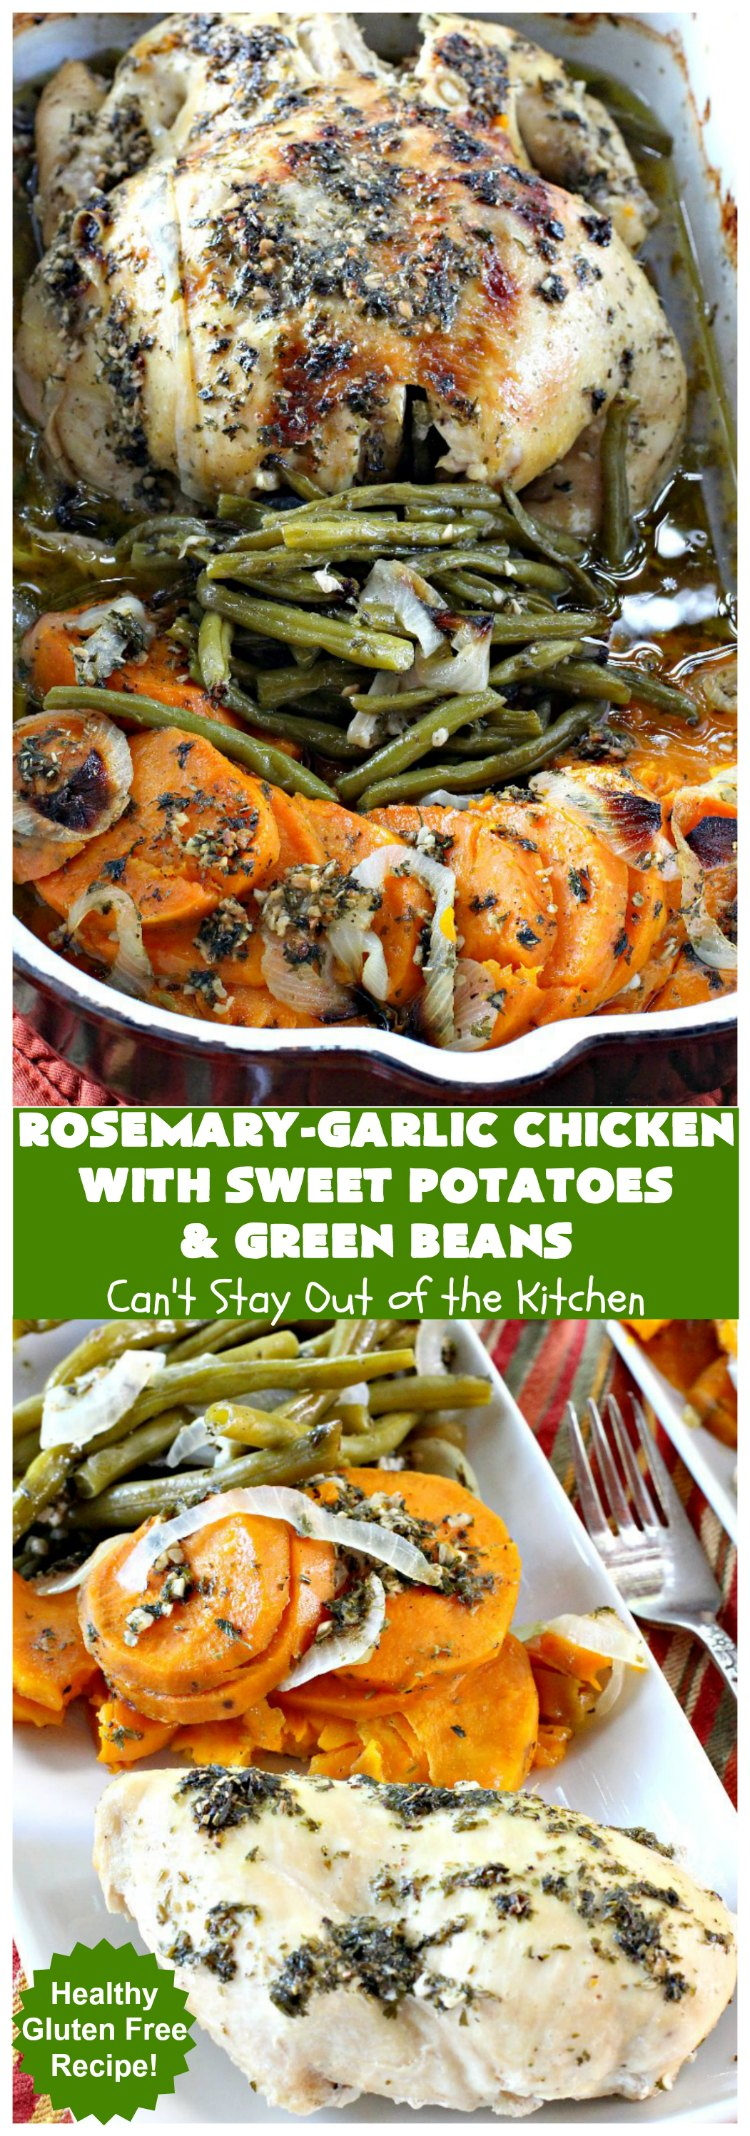 Rosemary-Garlic Chicken with Sweet Potatoes and Green Beans | Can't Stay Out of the Kitchen